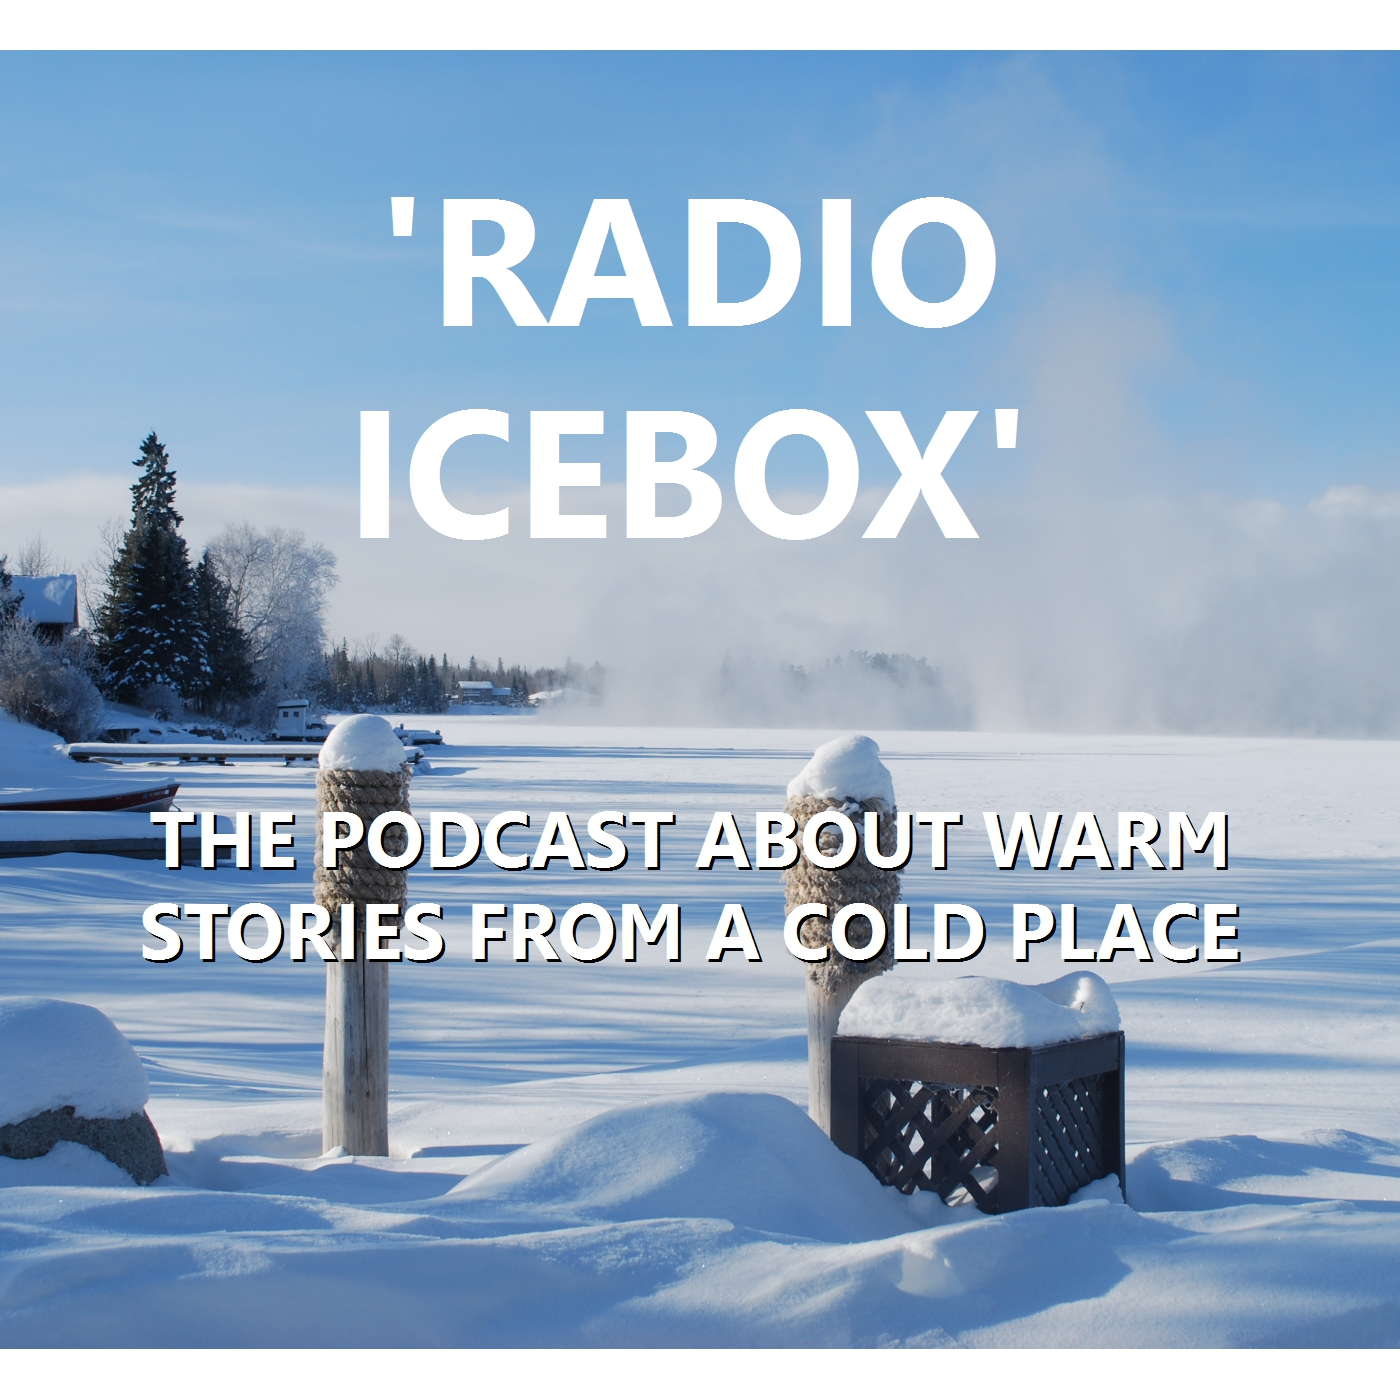 Radio Icebox Podcast